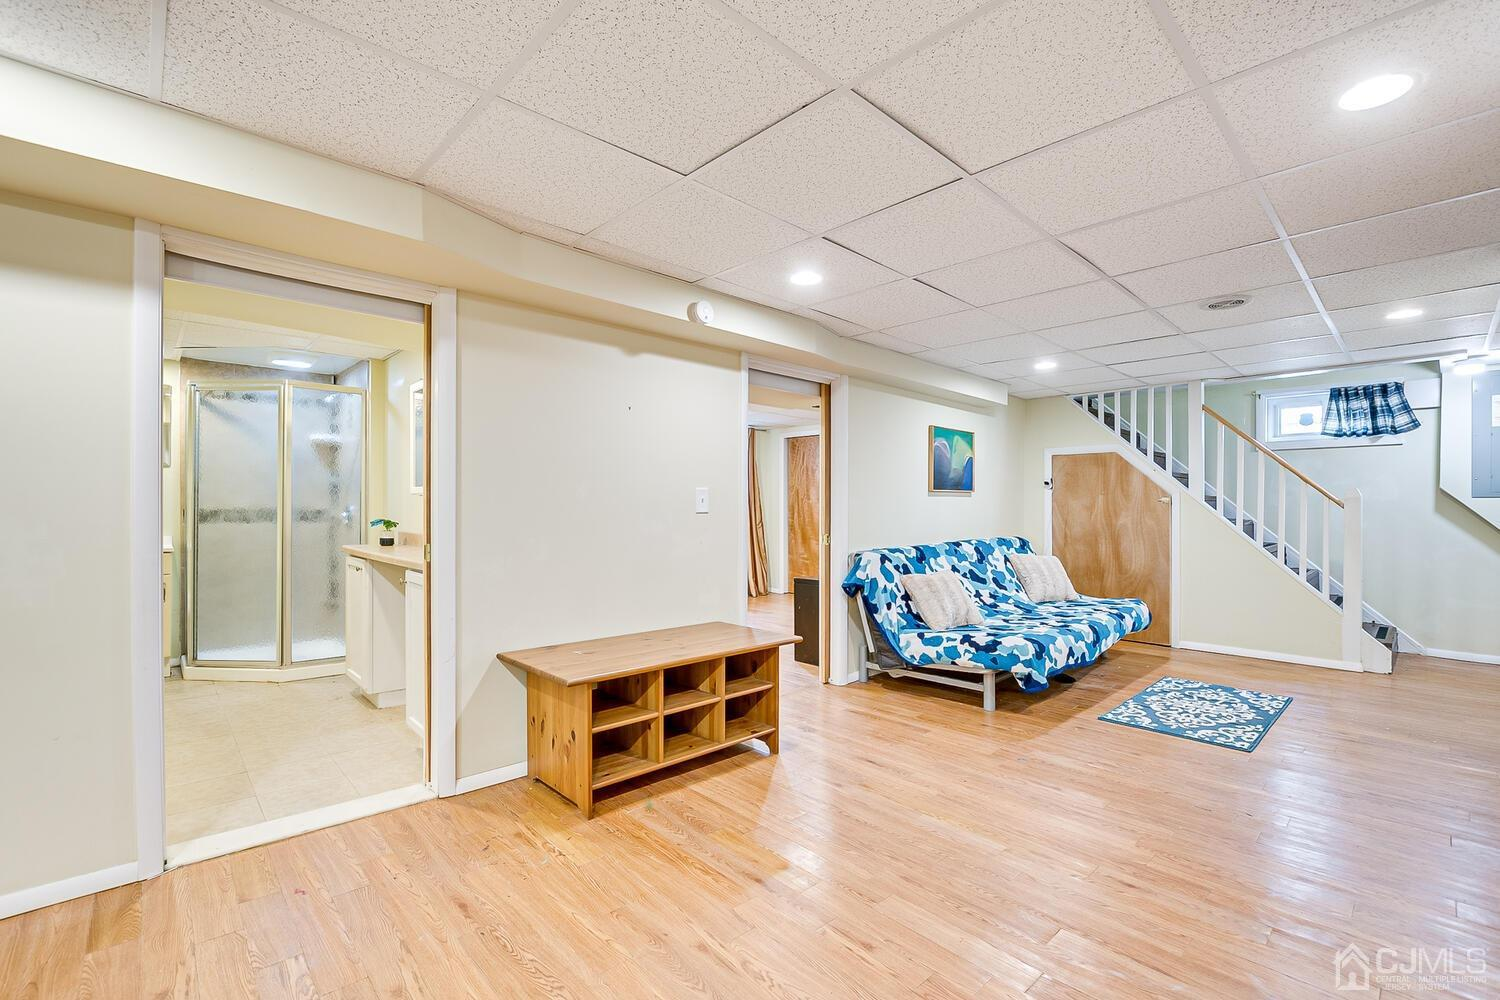 This View Shows door way to Full Updated Bath and to the right is that Large Room with double Closets.